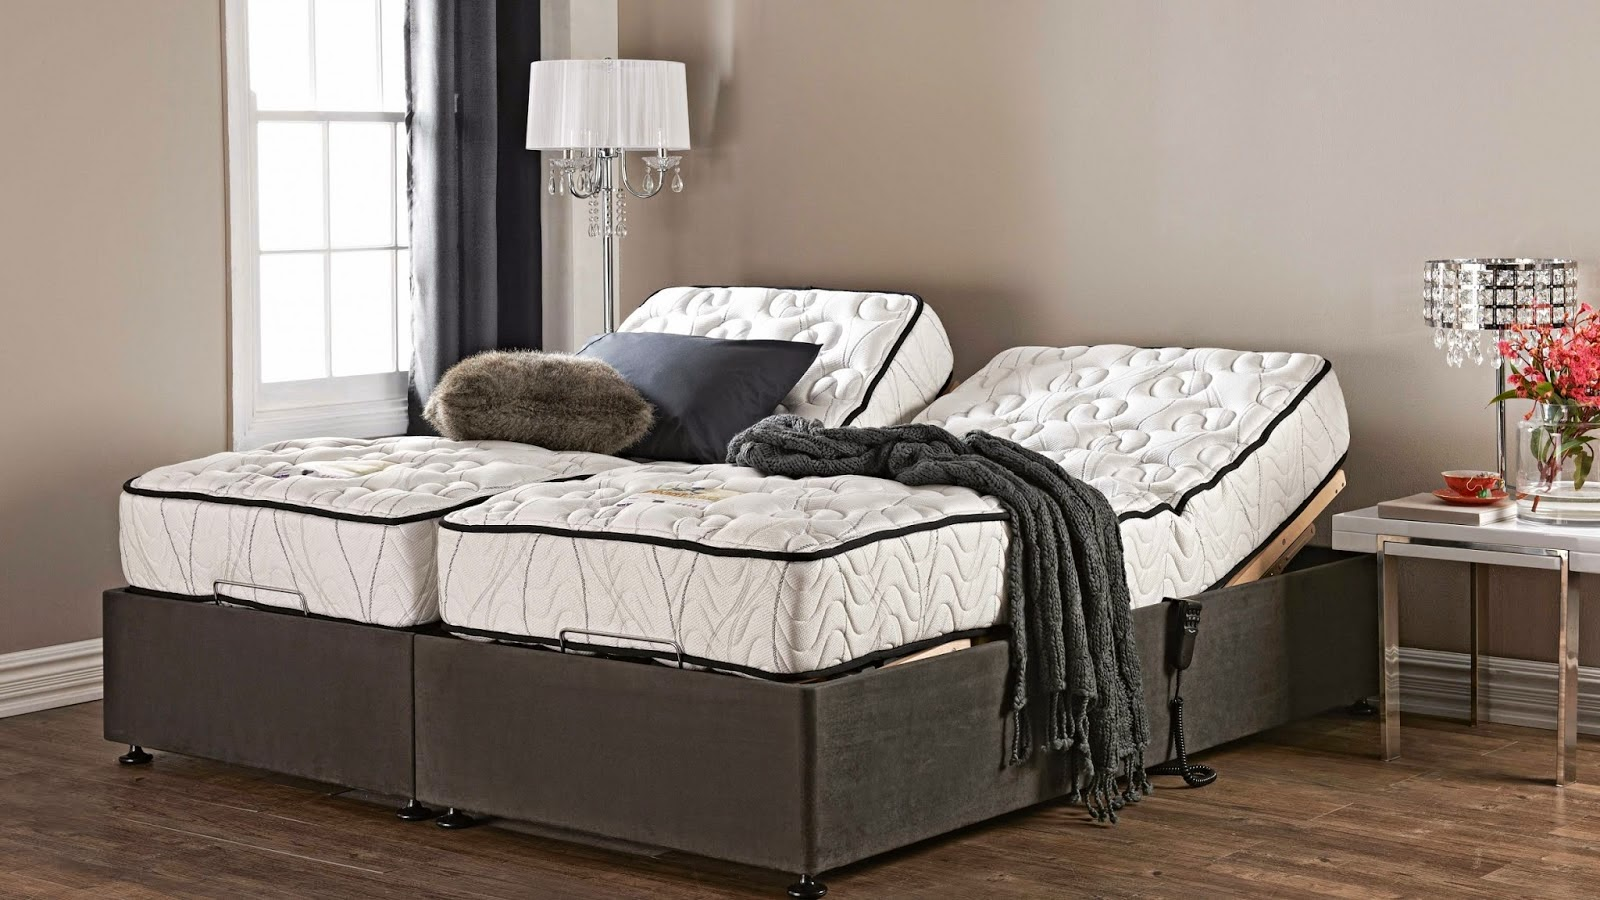 Craftmatic Bed King Size